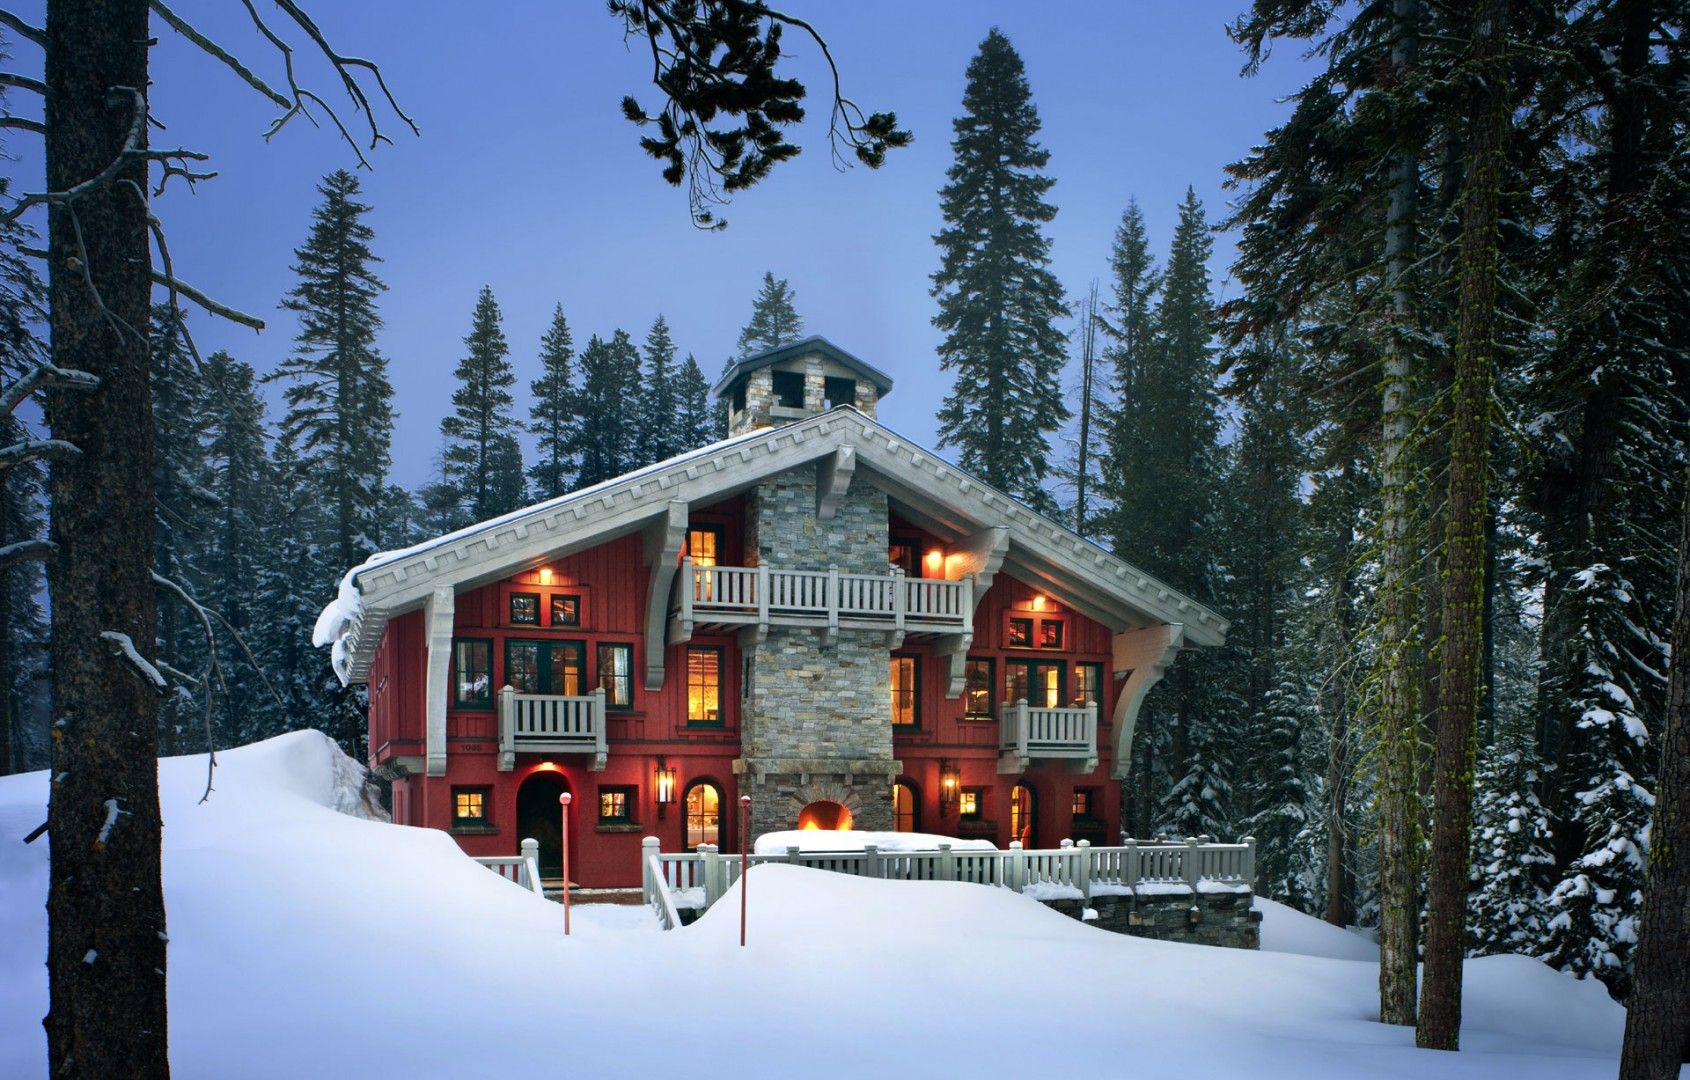 Alpine Ski Chalet House in Snow